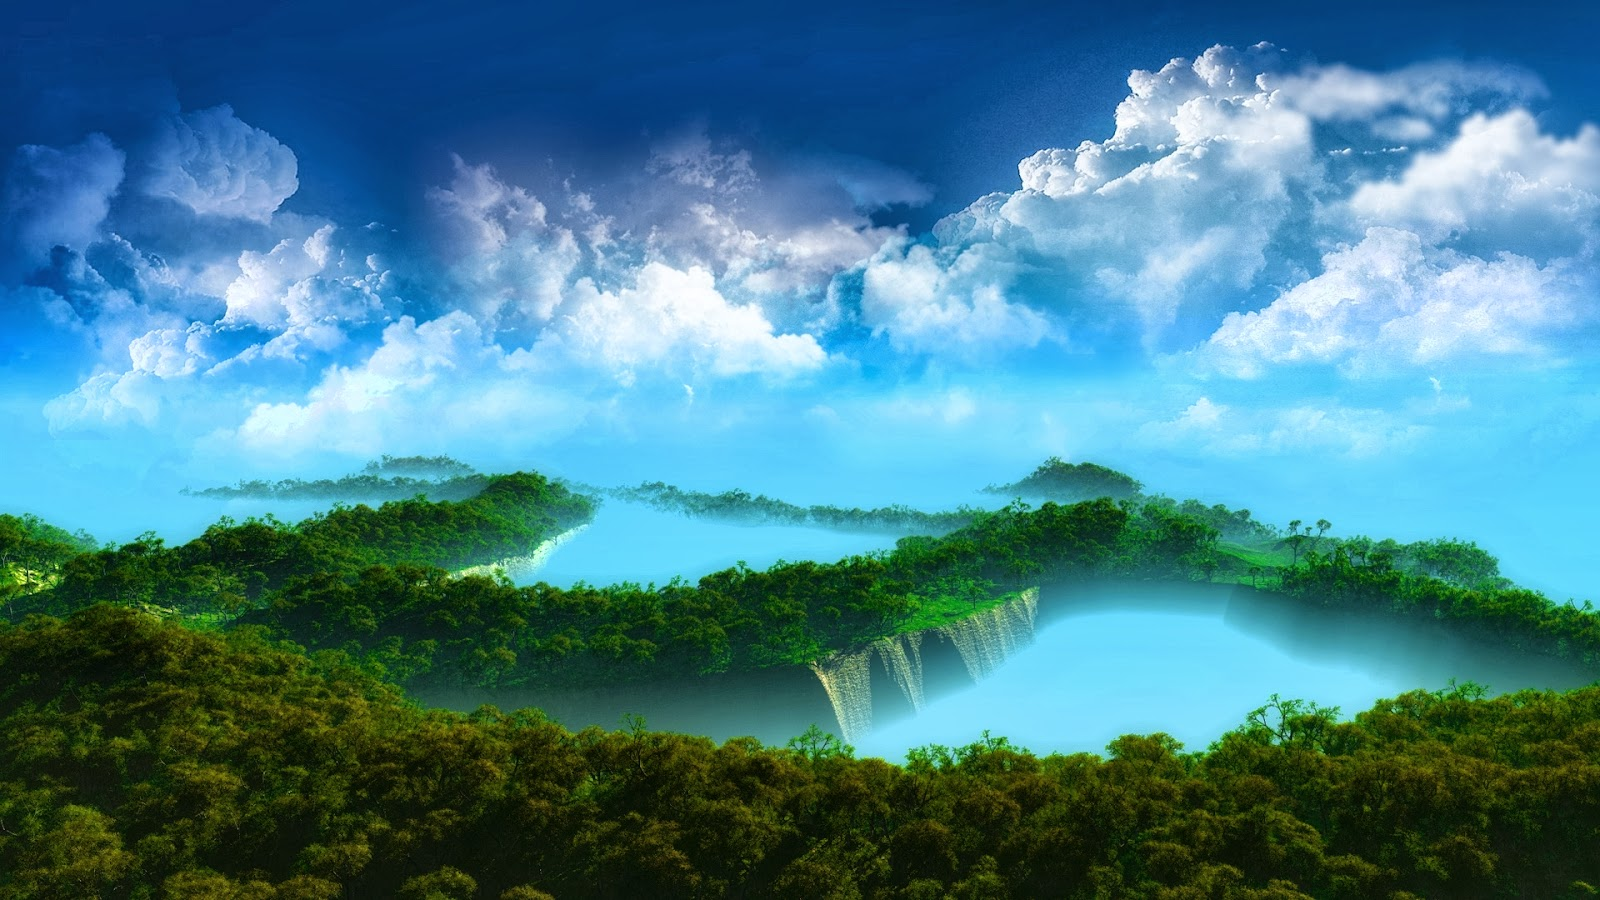 Full HD Size Nature Wallpapers Free Downloads | Full HD Nature Wallpapers